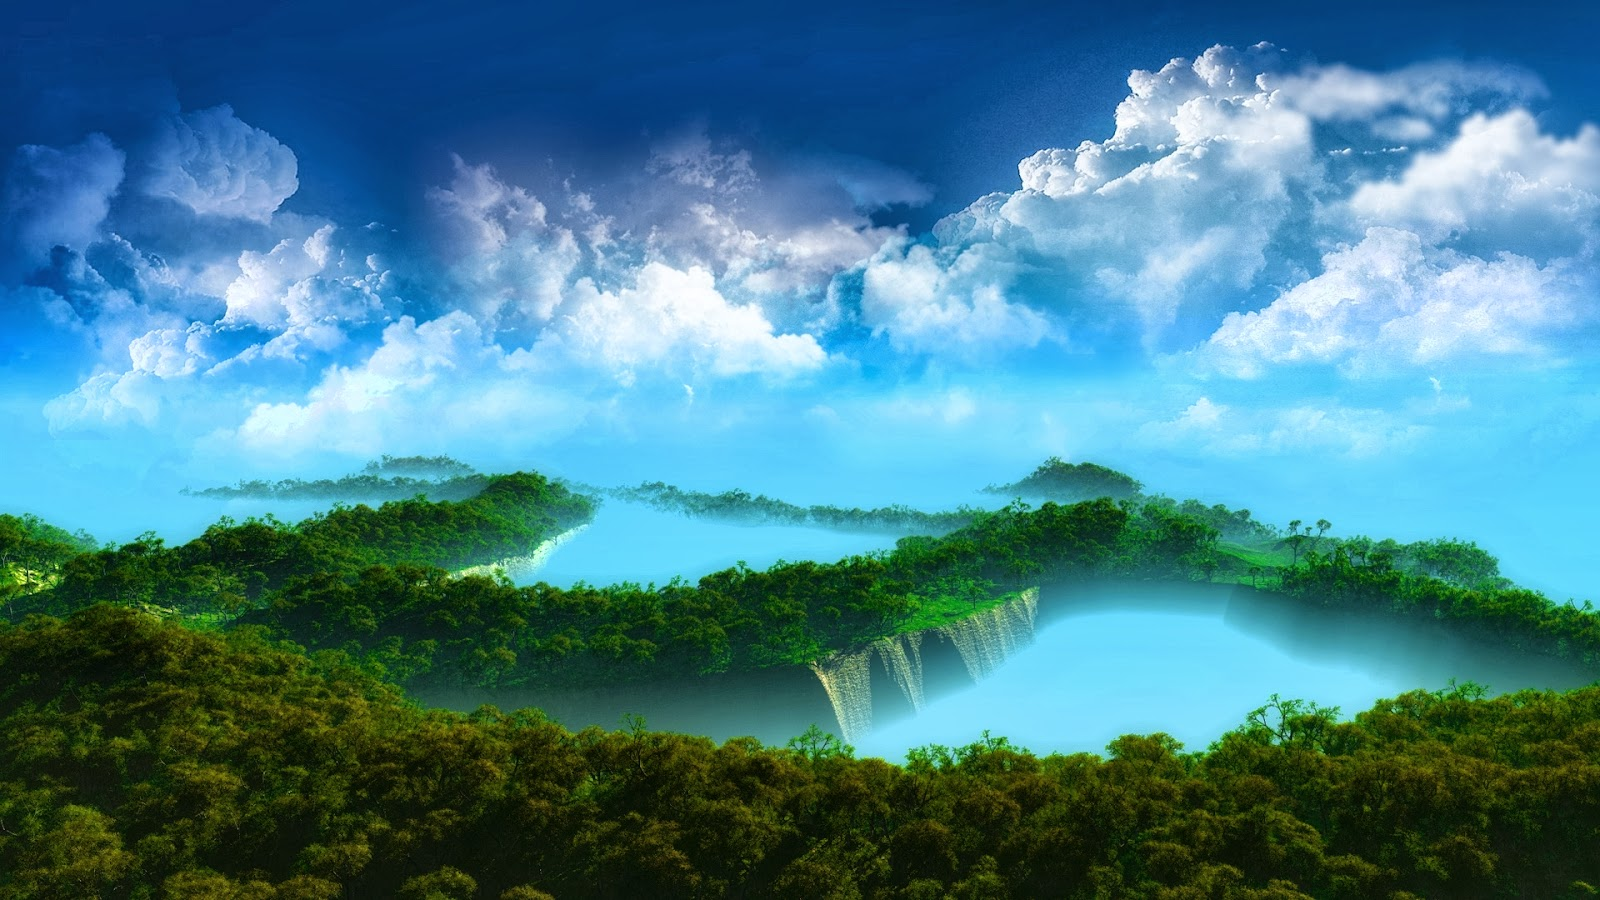 Full HD Size Nature Wallpapers Free Downloads | Full HD Nature Wallpapers